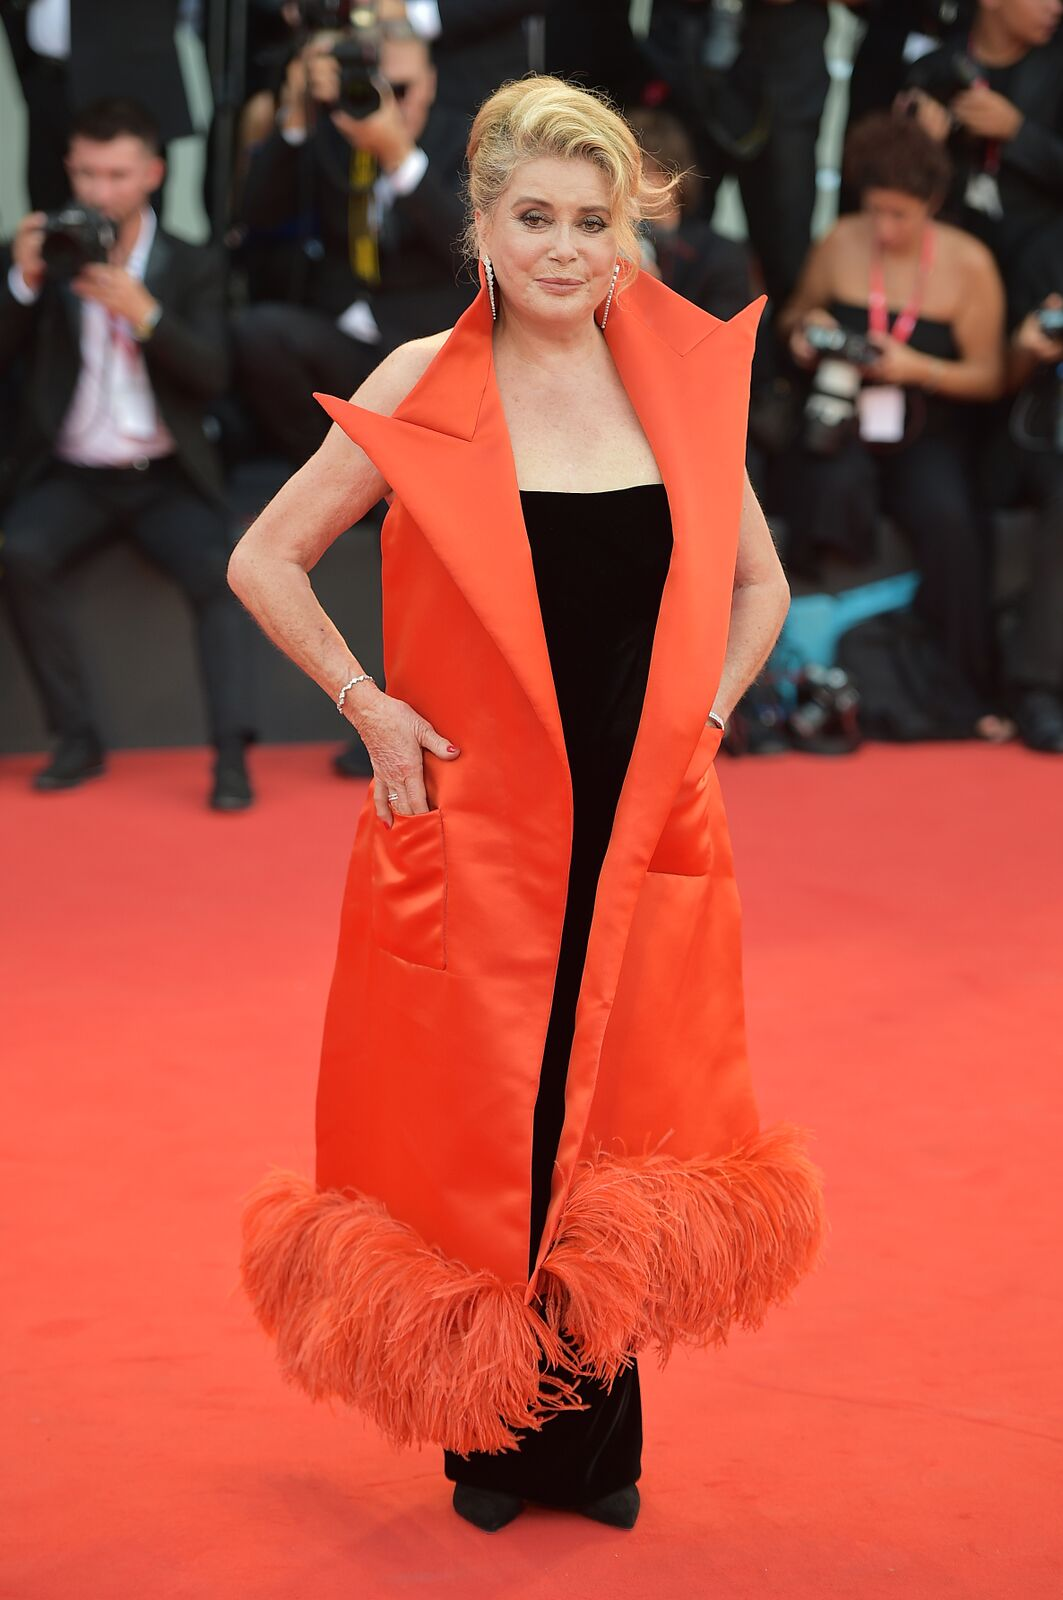 Catherine-Deneuve sur le tapis rouge. | Photo : Getty Images